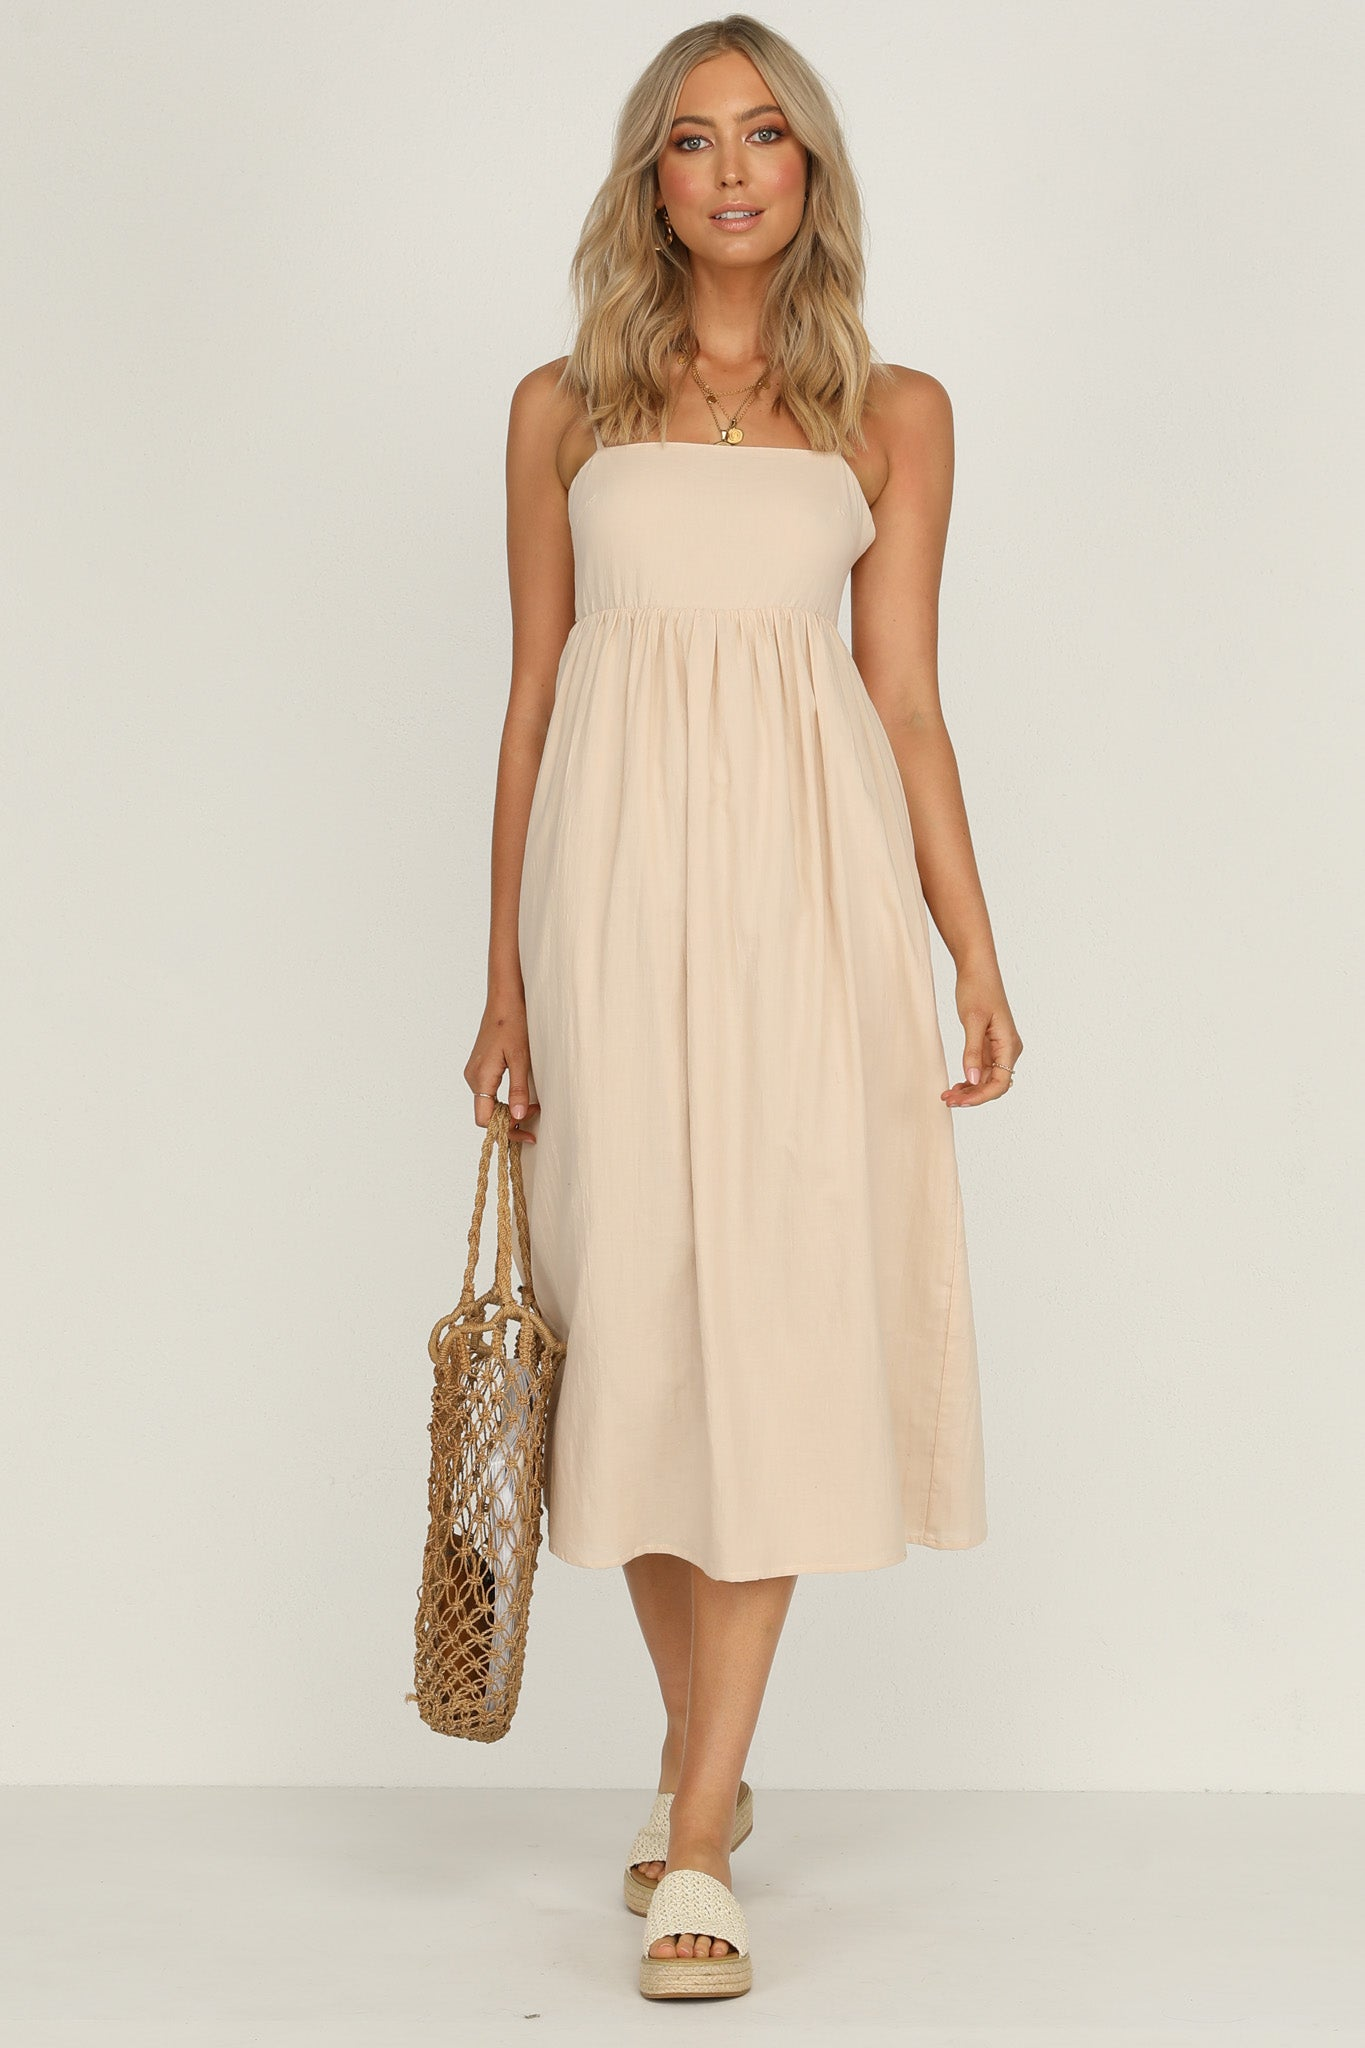 enchante dress in sand swing midi fit